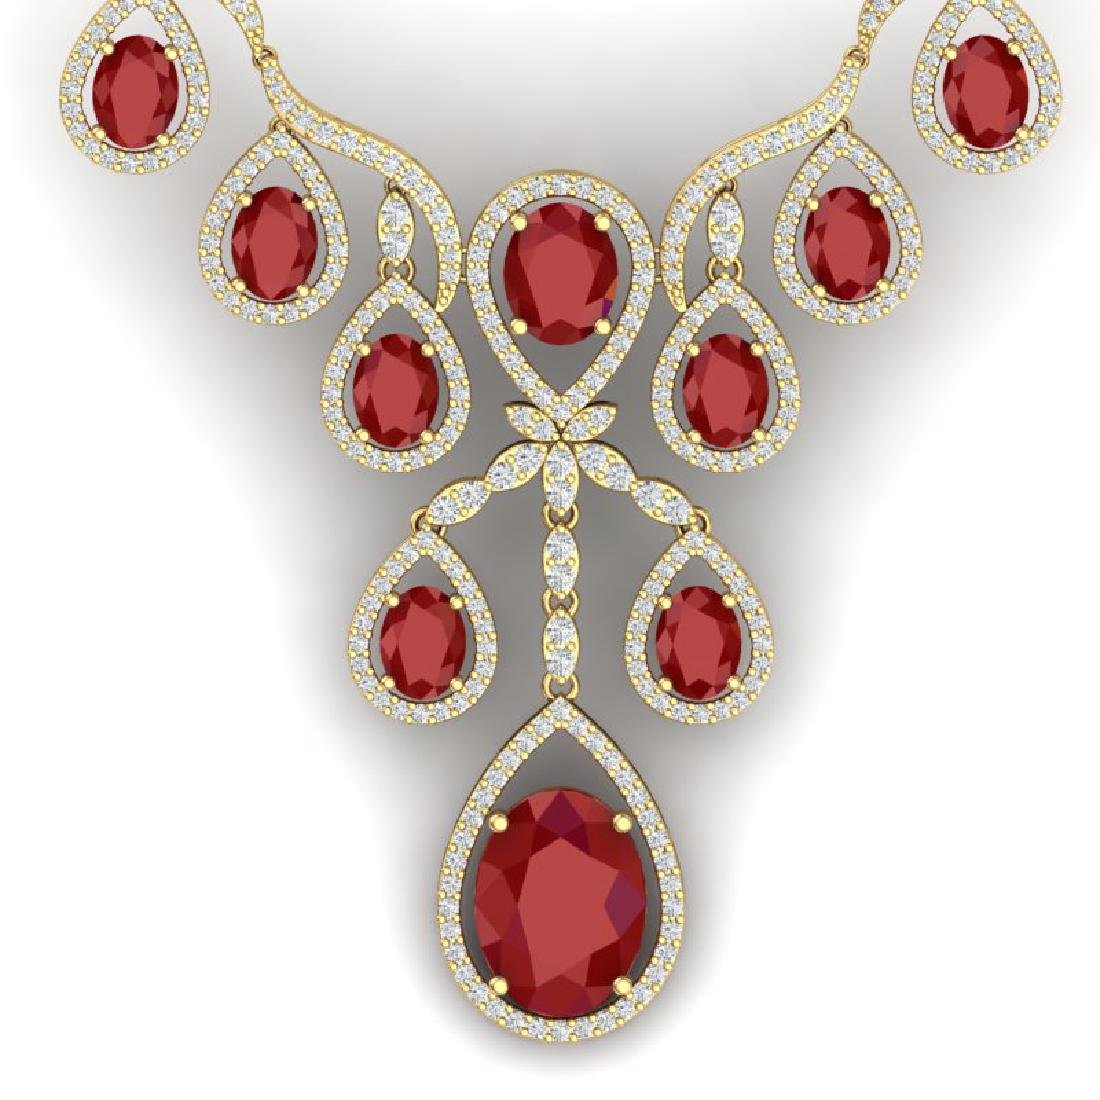 37.66 CTW Royalty Ruby & VS Diamond Necklace 18K Yellow